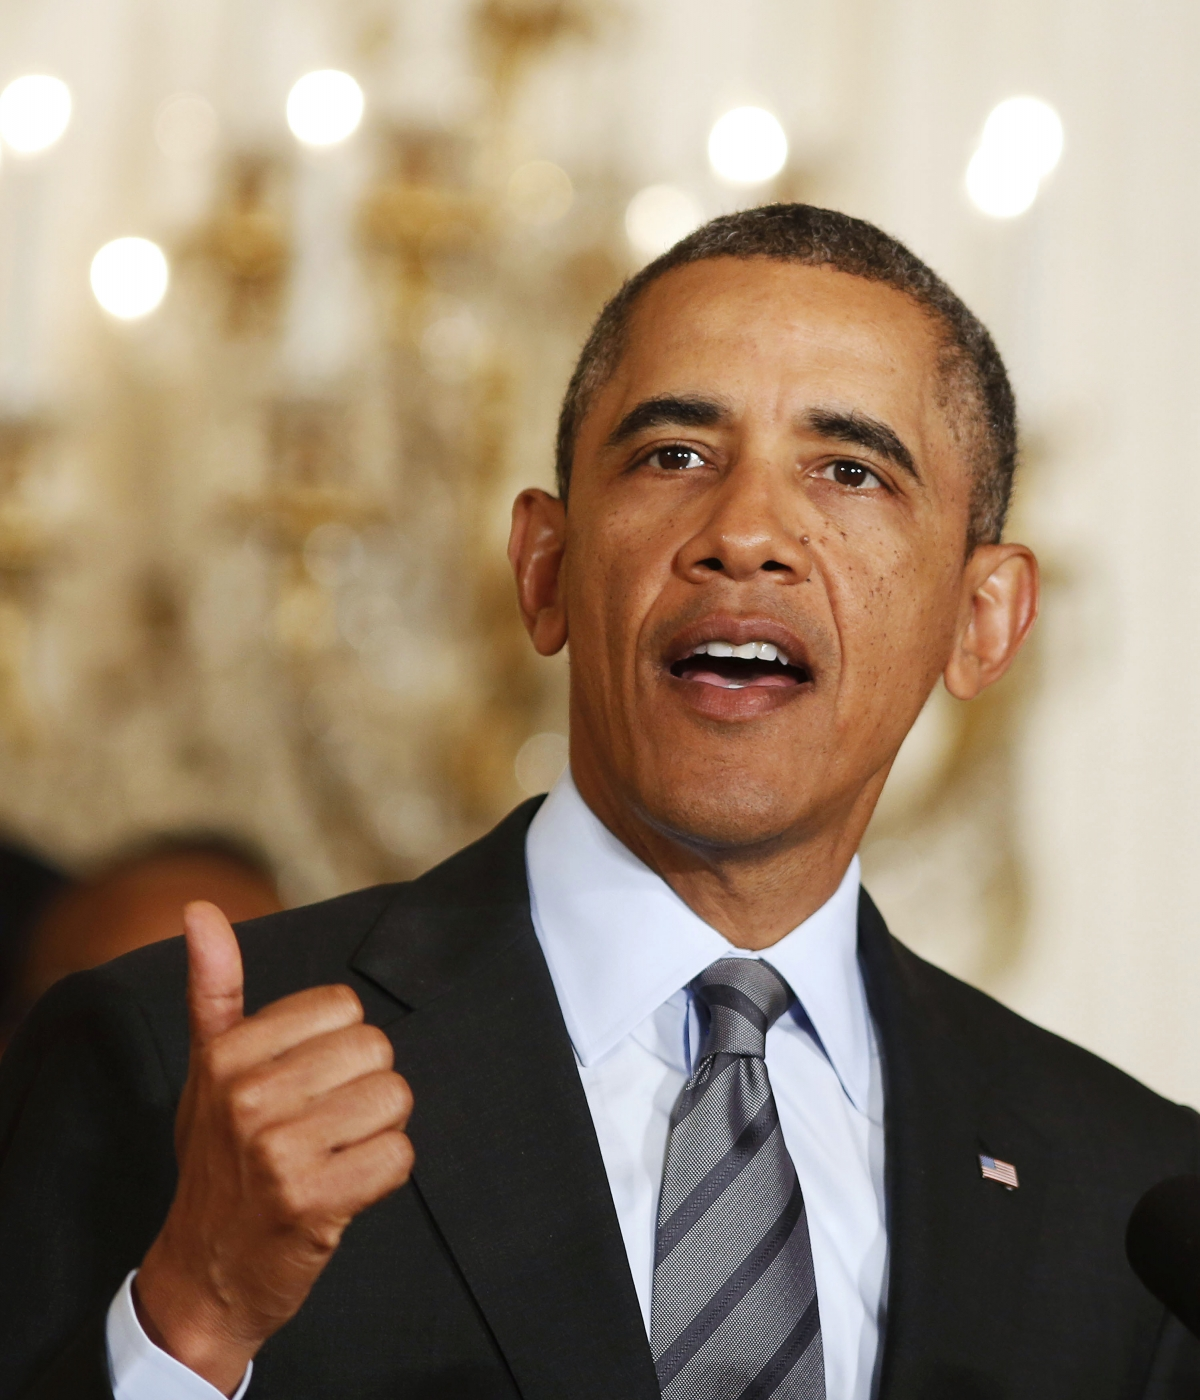 In at number 2, U.S. President Barack Obama is the second most admired person on the planet.